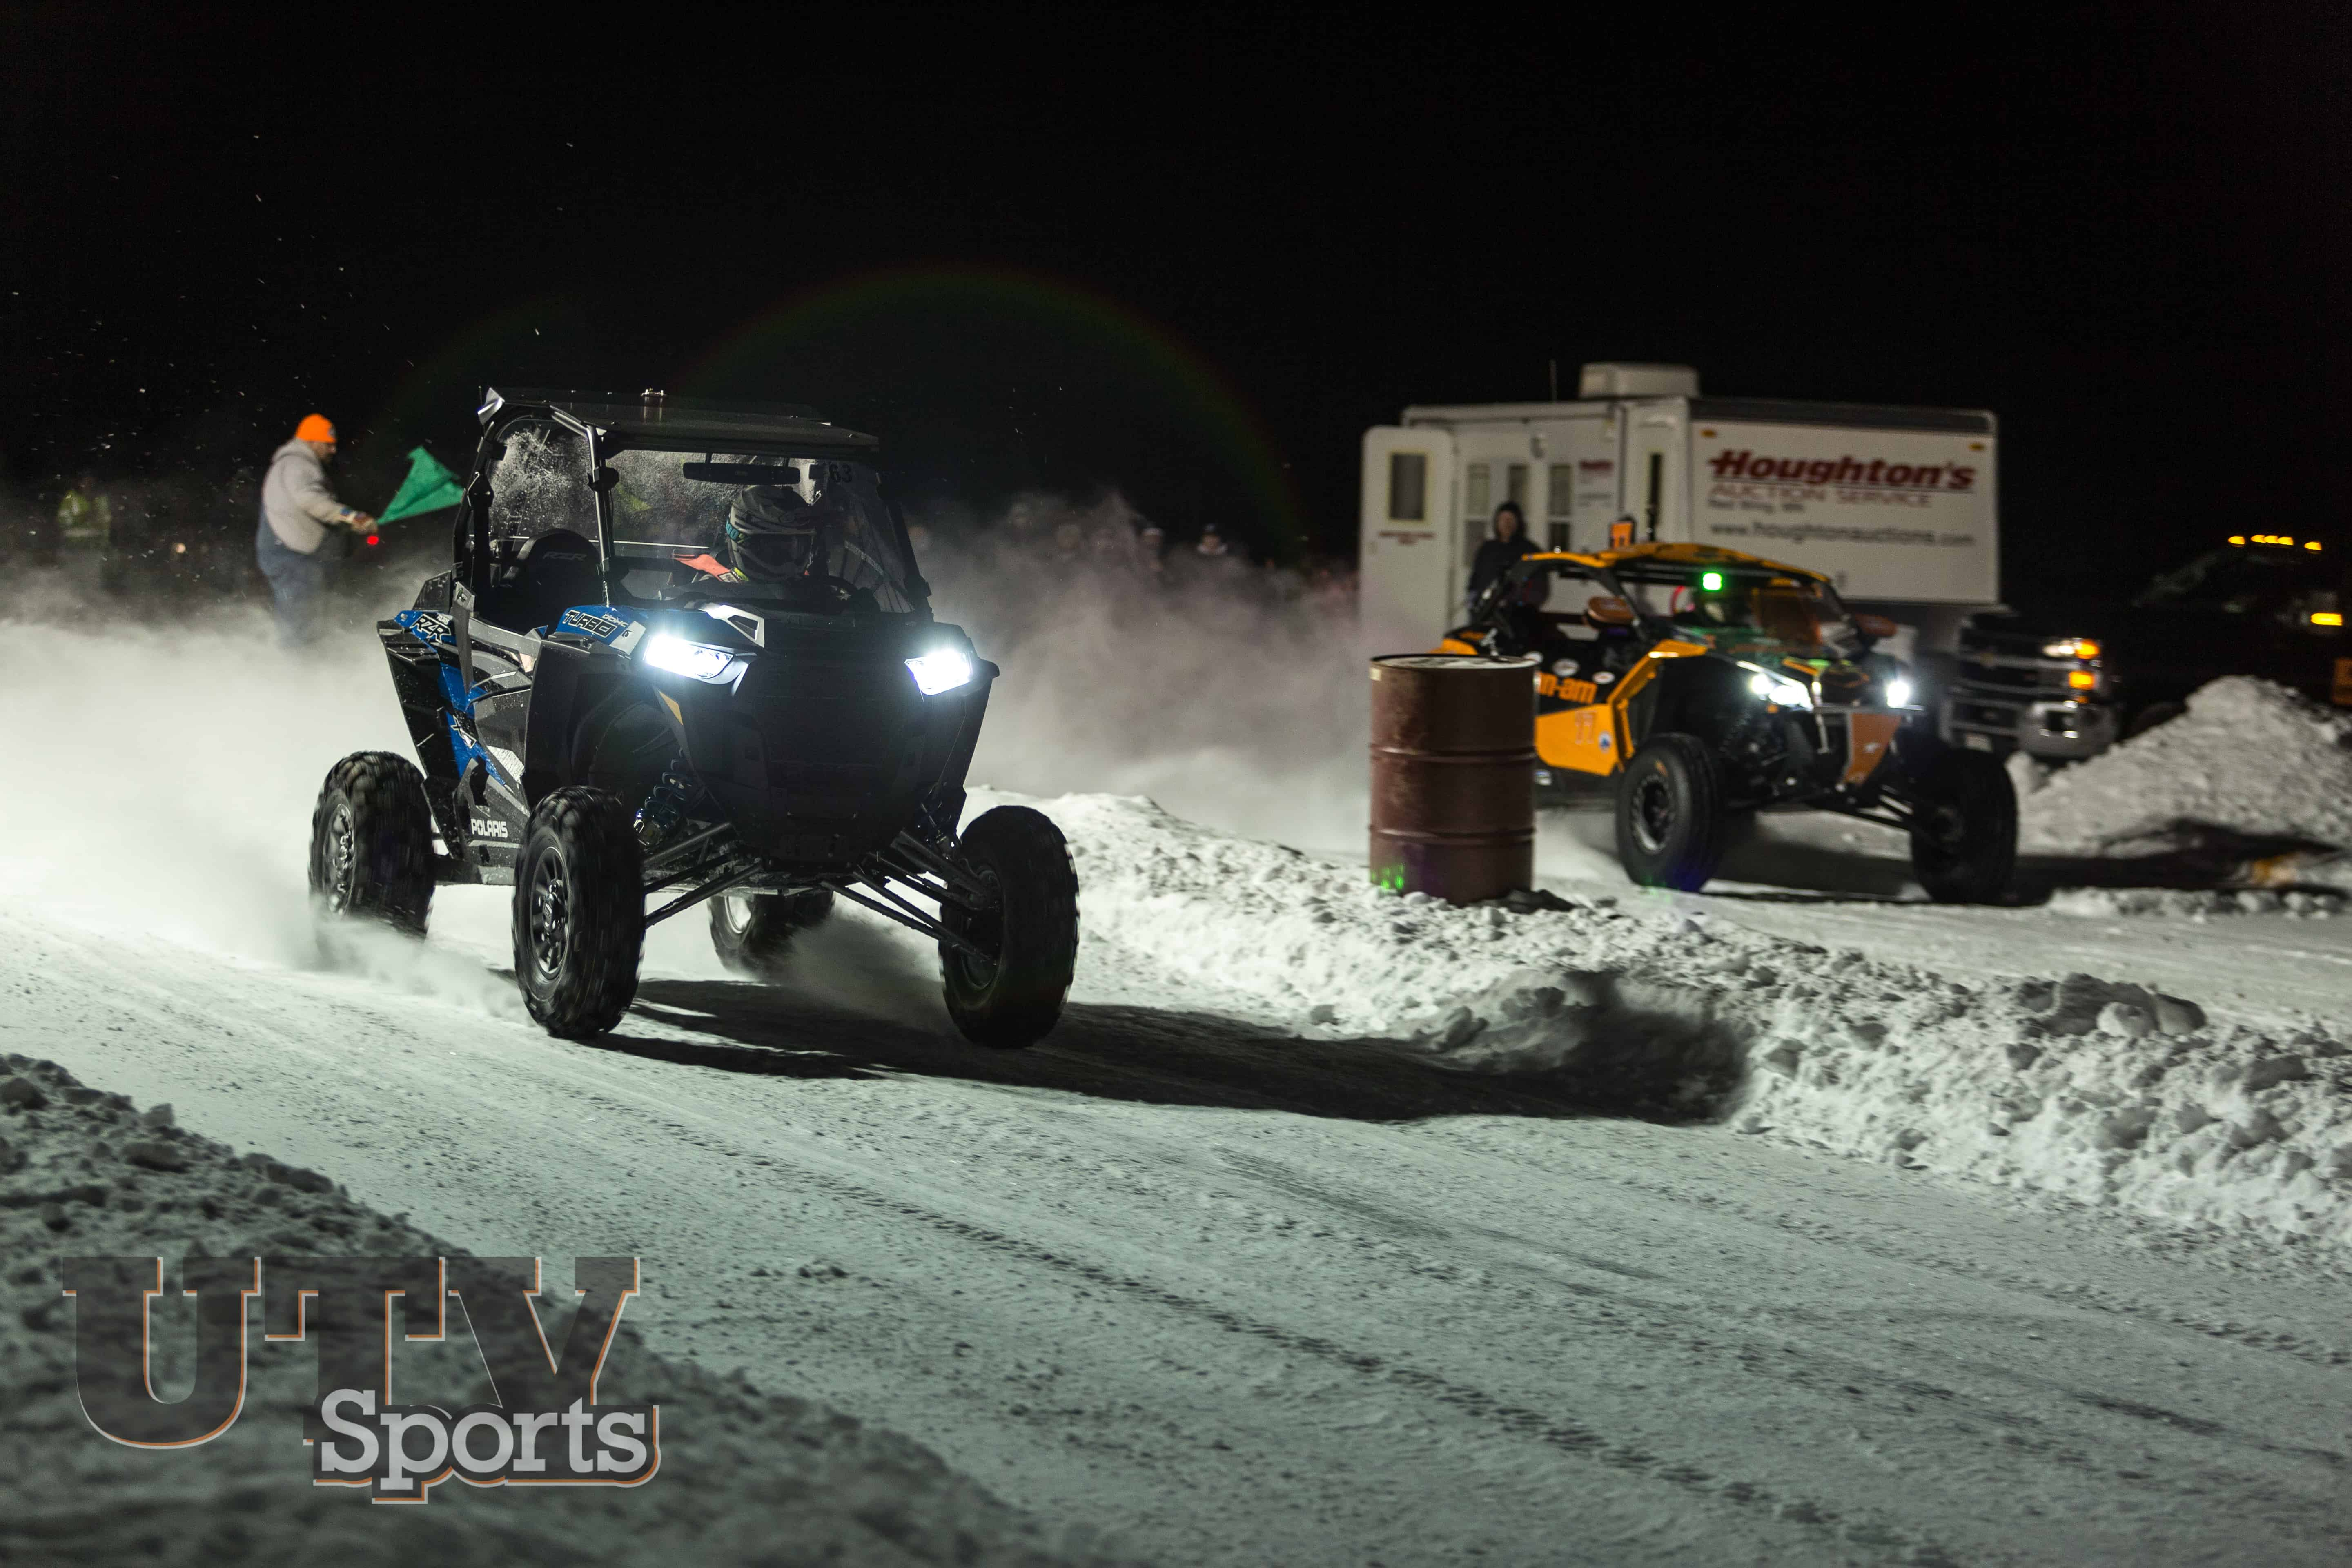 Iceman 500 Presented by Evolution Powersports - UTV Sports Magazine